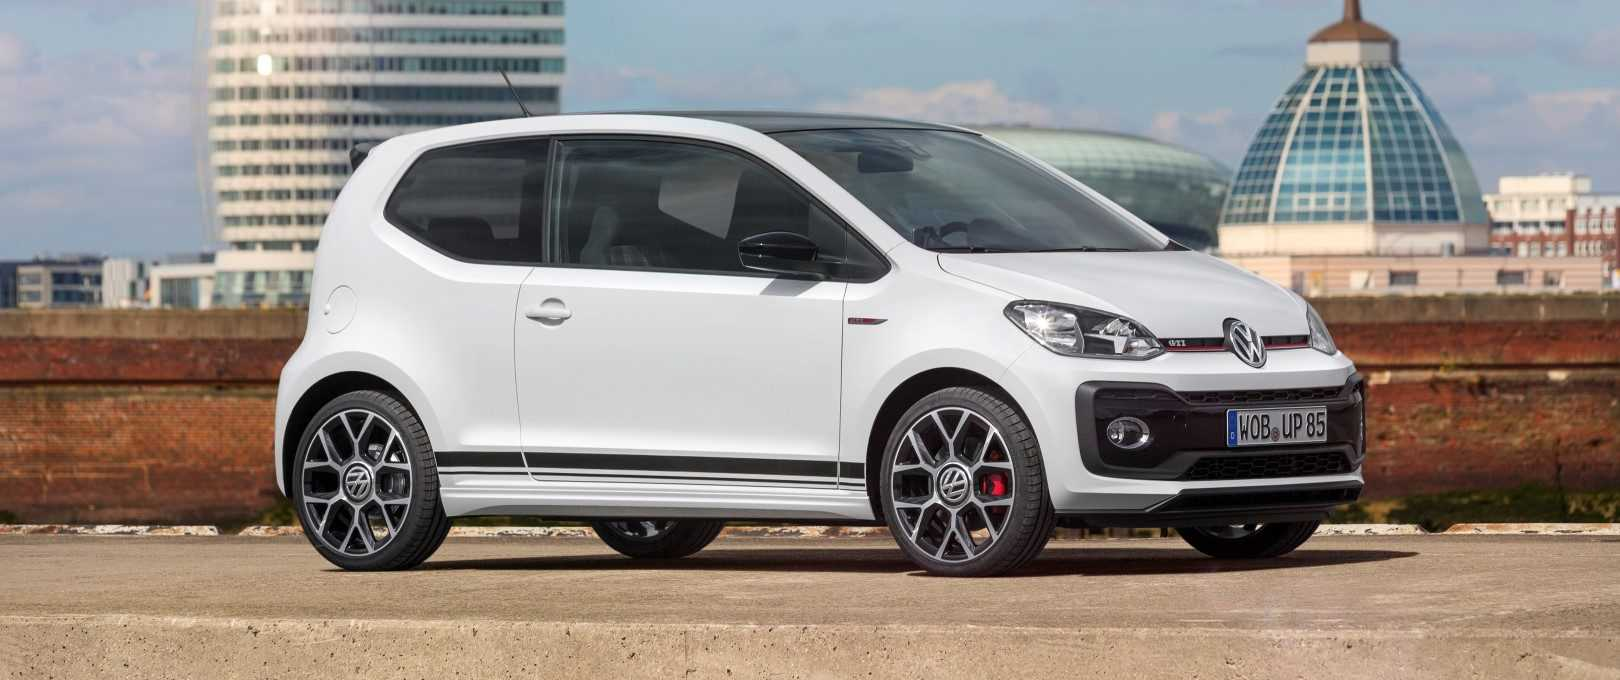 Volkswagen up! GTI concept-car 2017